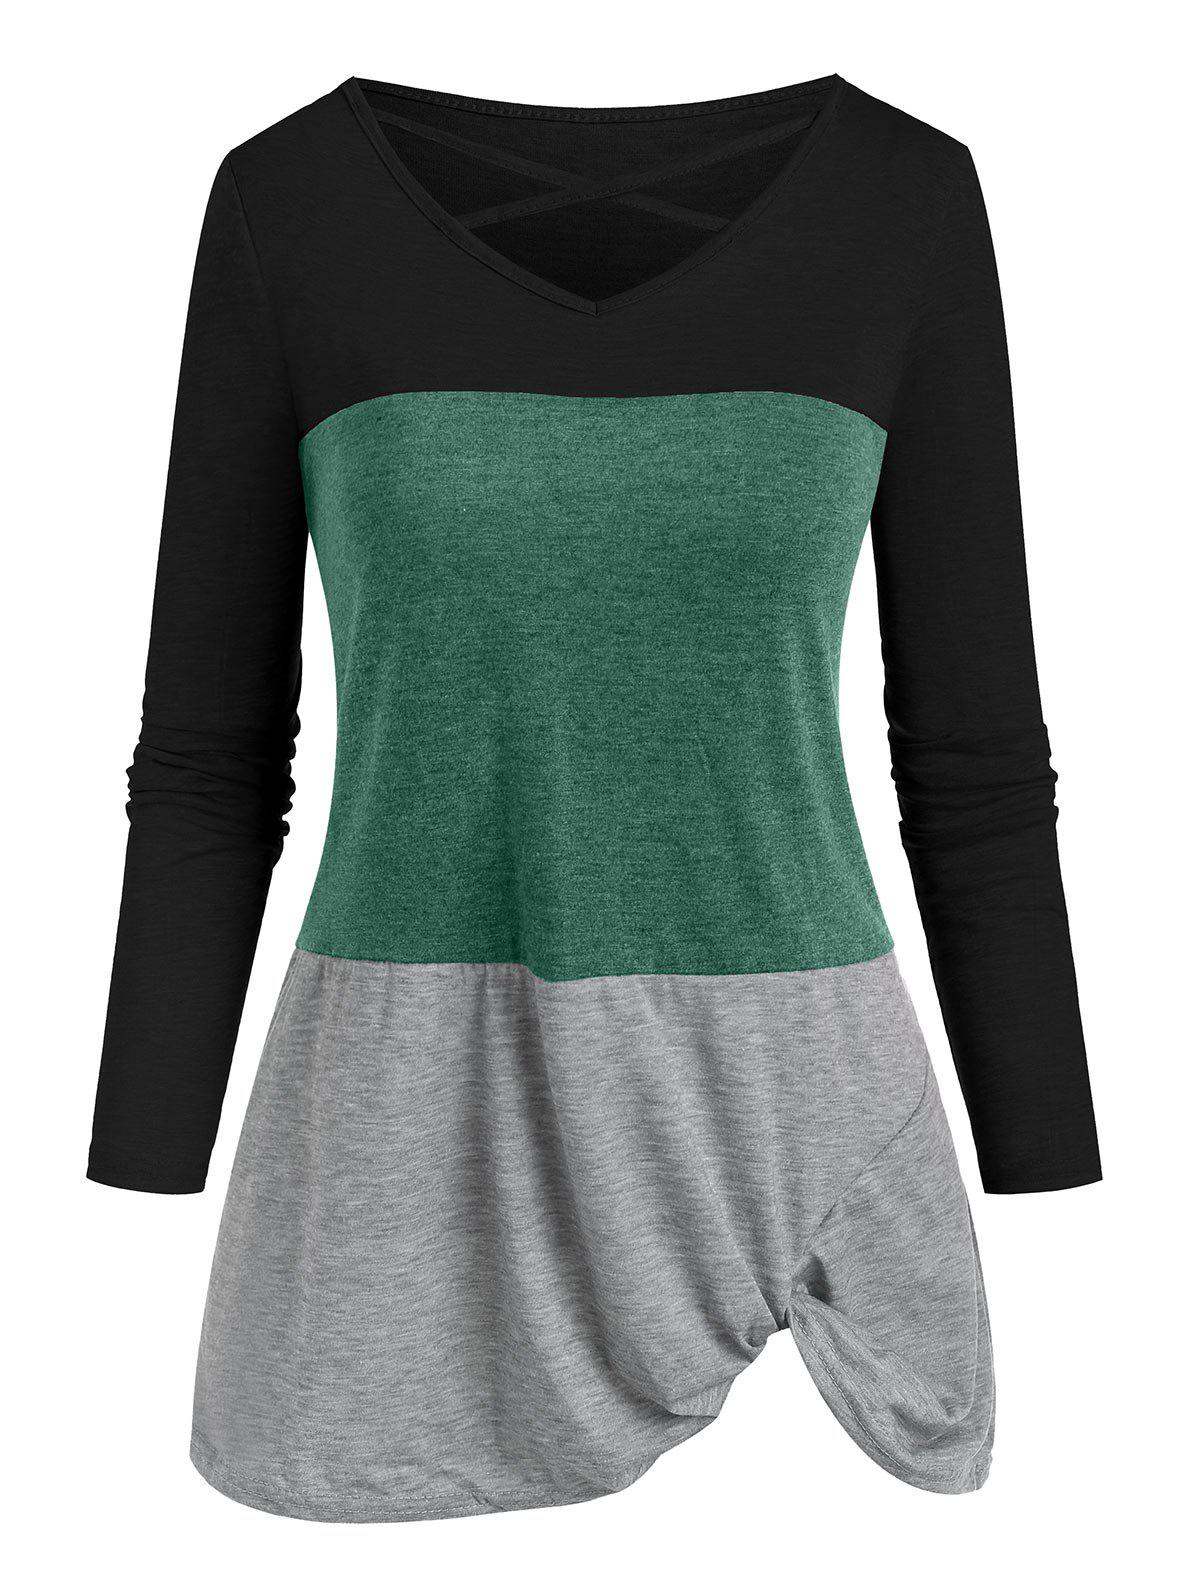 Criss Cross Twisted Colorblock T-shirt - DEEP GREEN 2XL